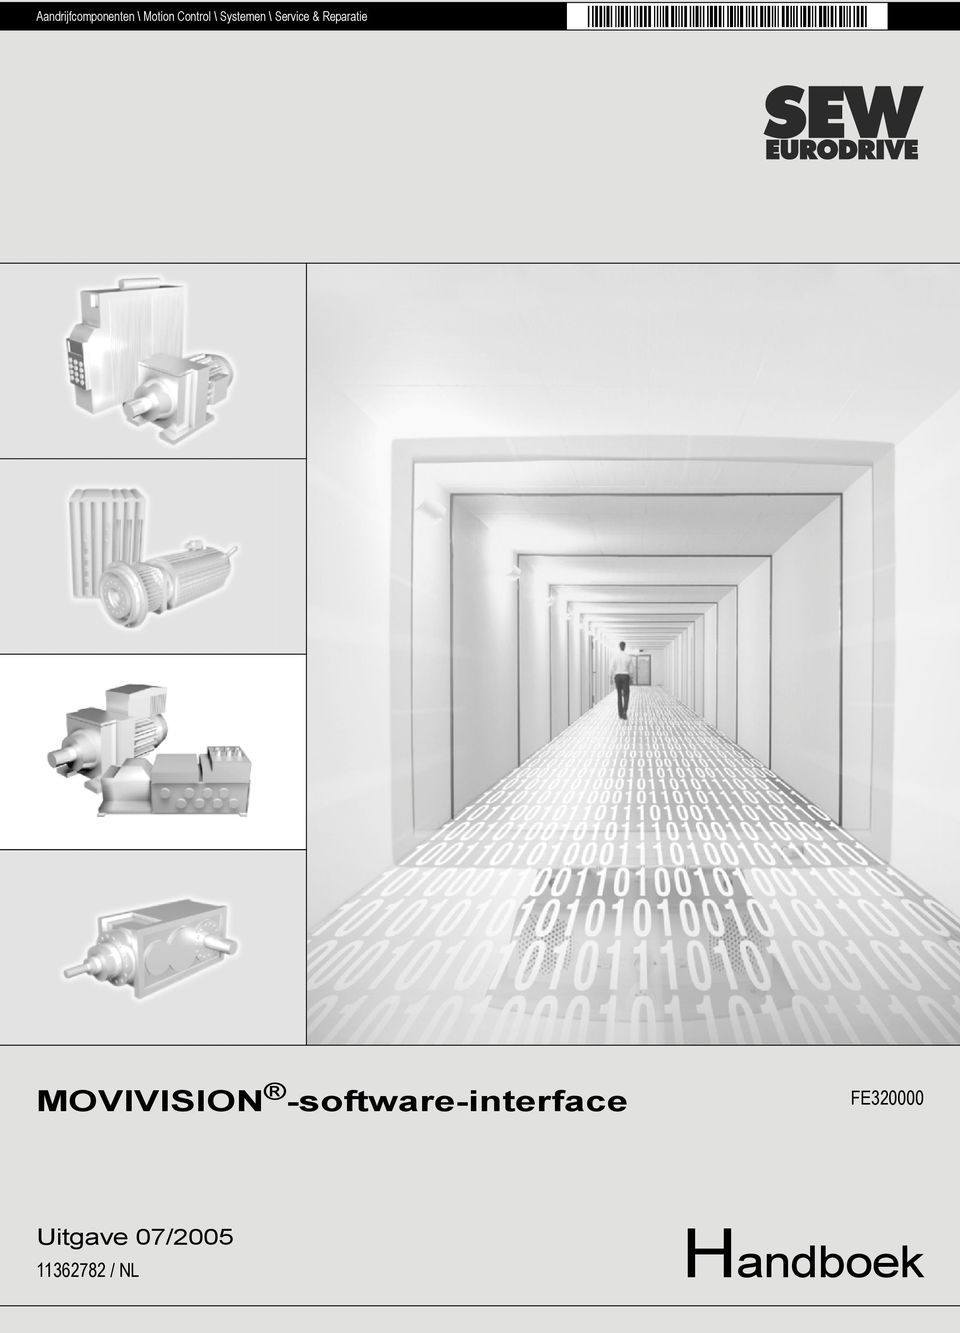 MOVIVISION -software-interface